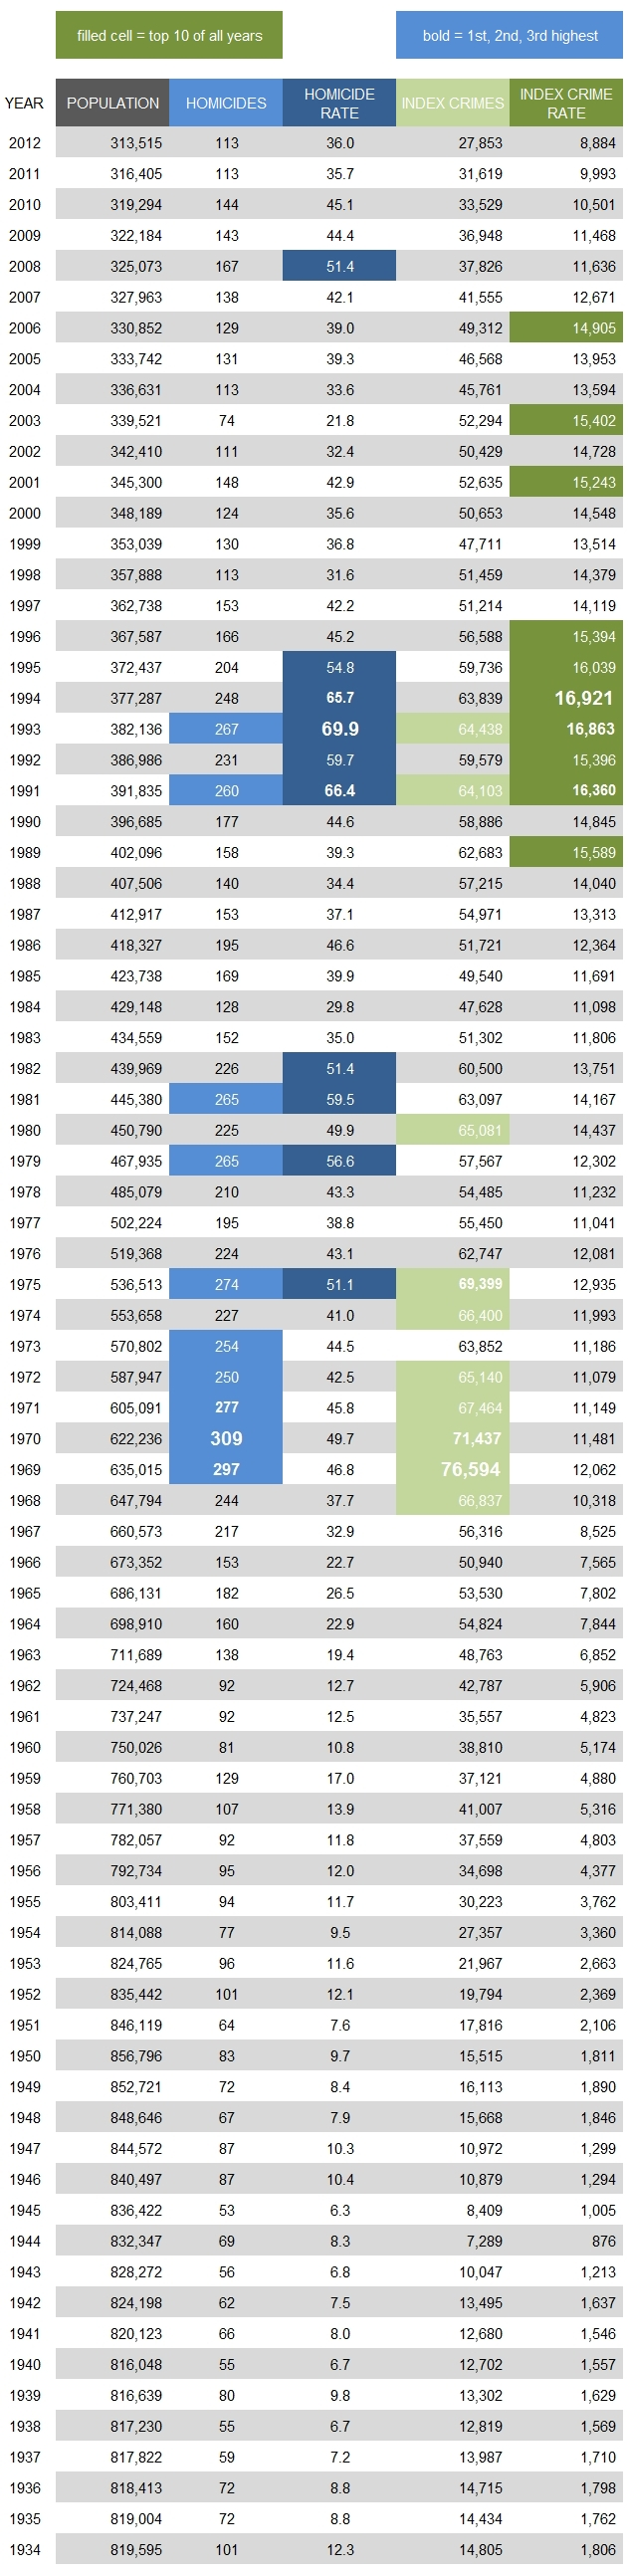 City of St. Louis Homicide and Index Crimes 1934-2011